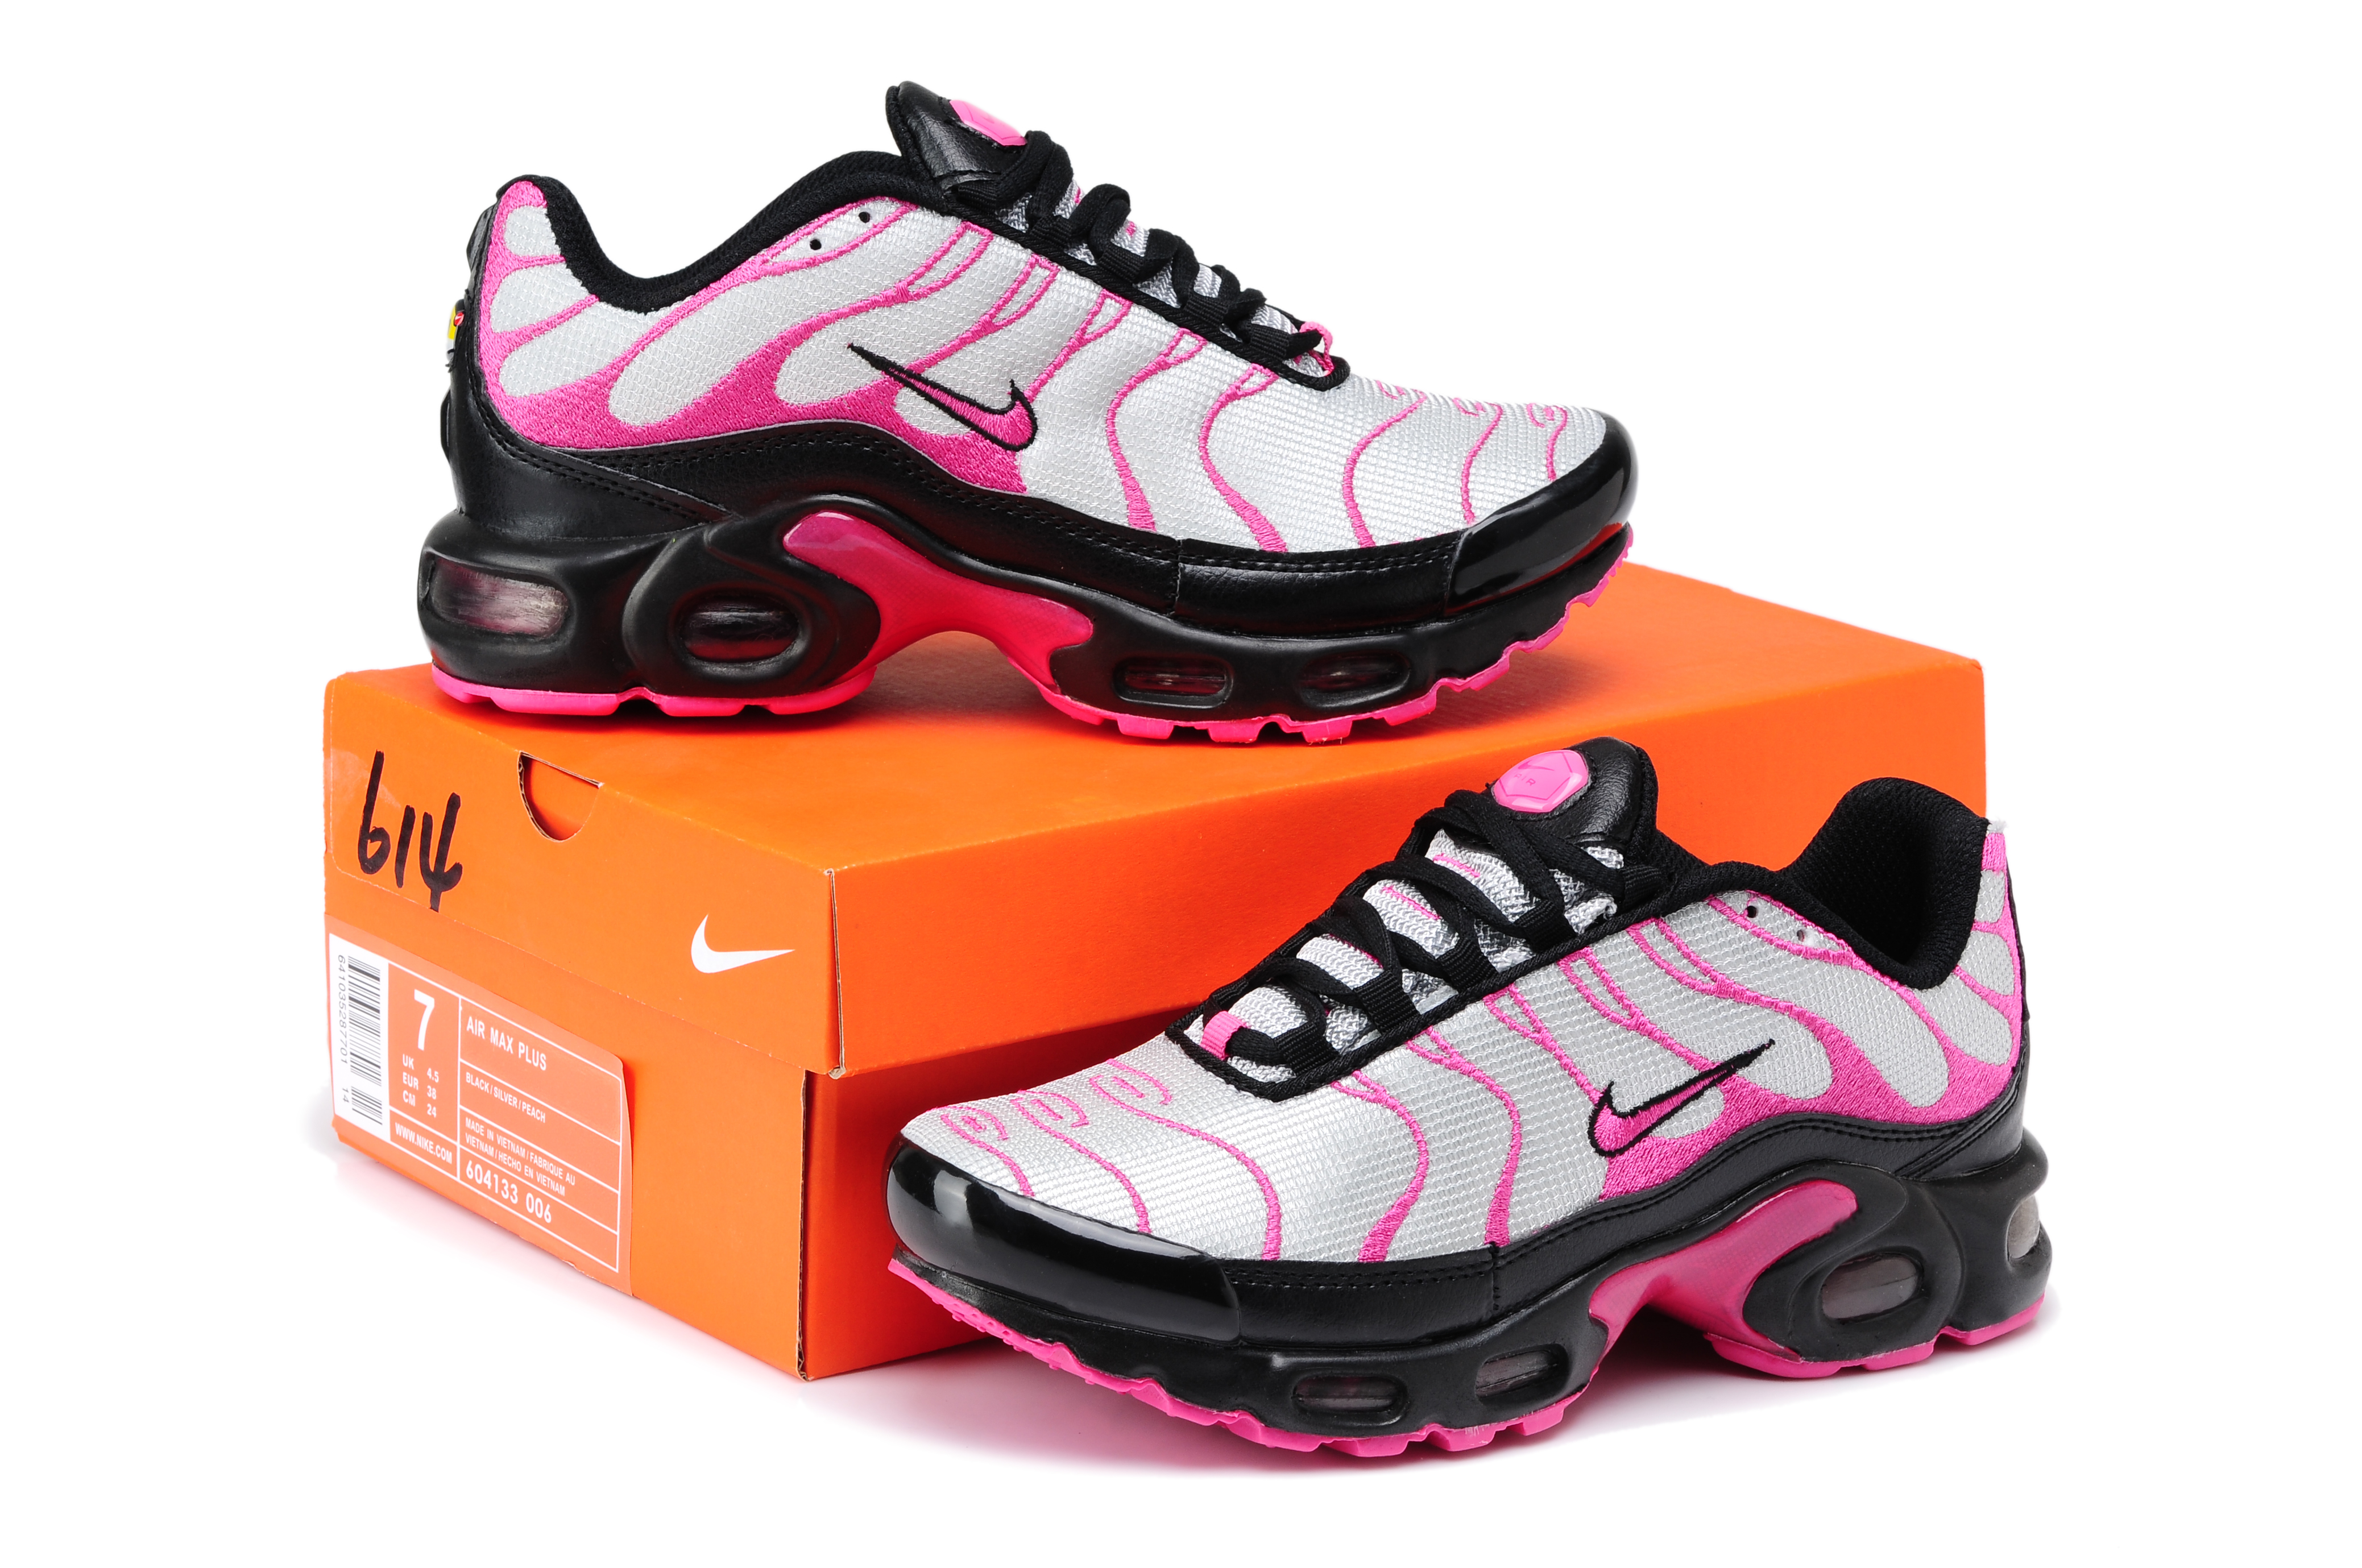 nike air max 2016 taille 38 vente chaussures baskets nike. Black Bedroom Furniture Sets. Home Design Ideas